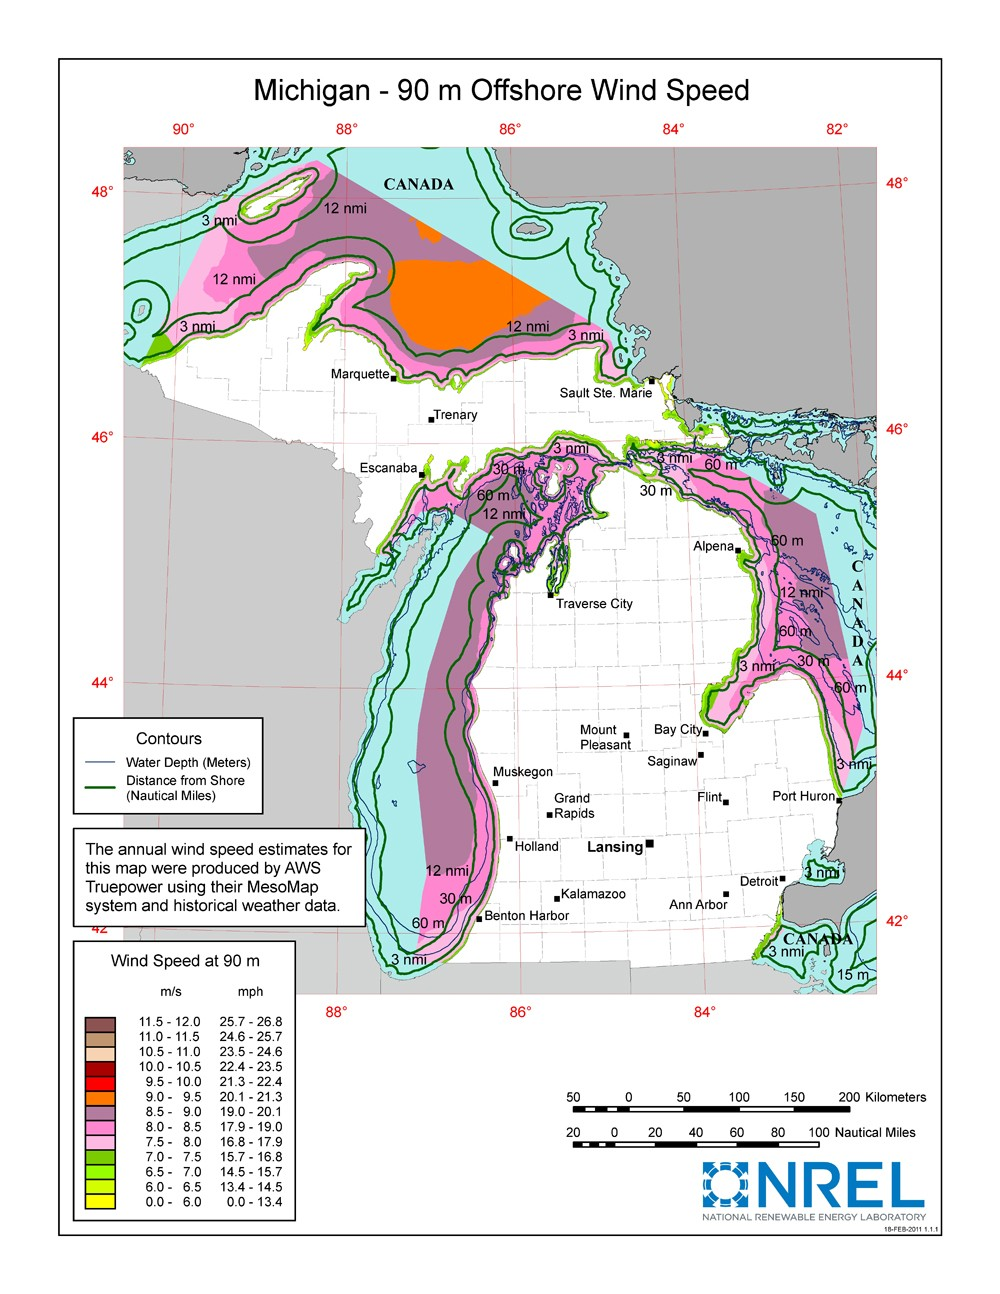 A map of Michigan showing offshore wind speeds.